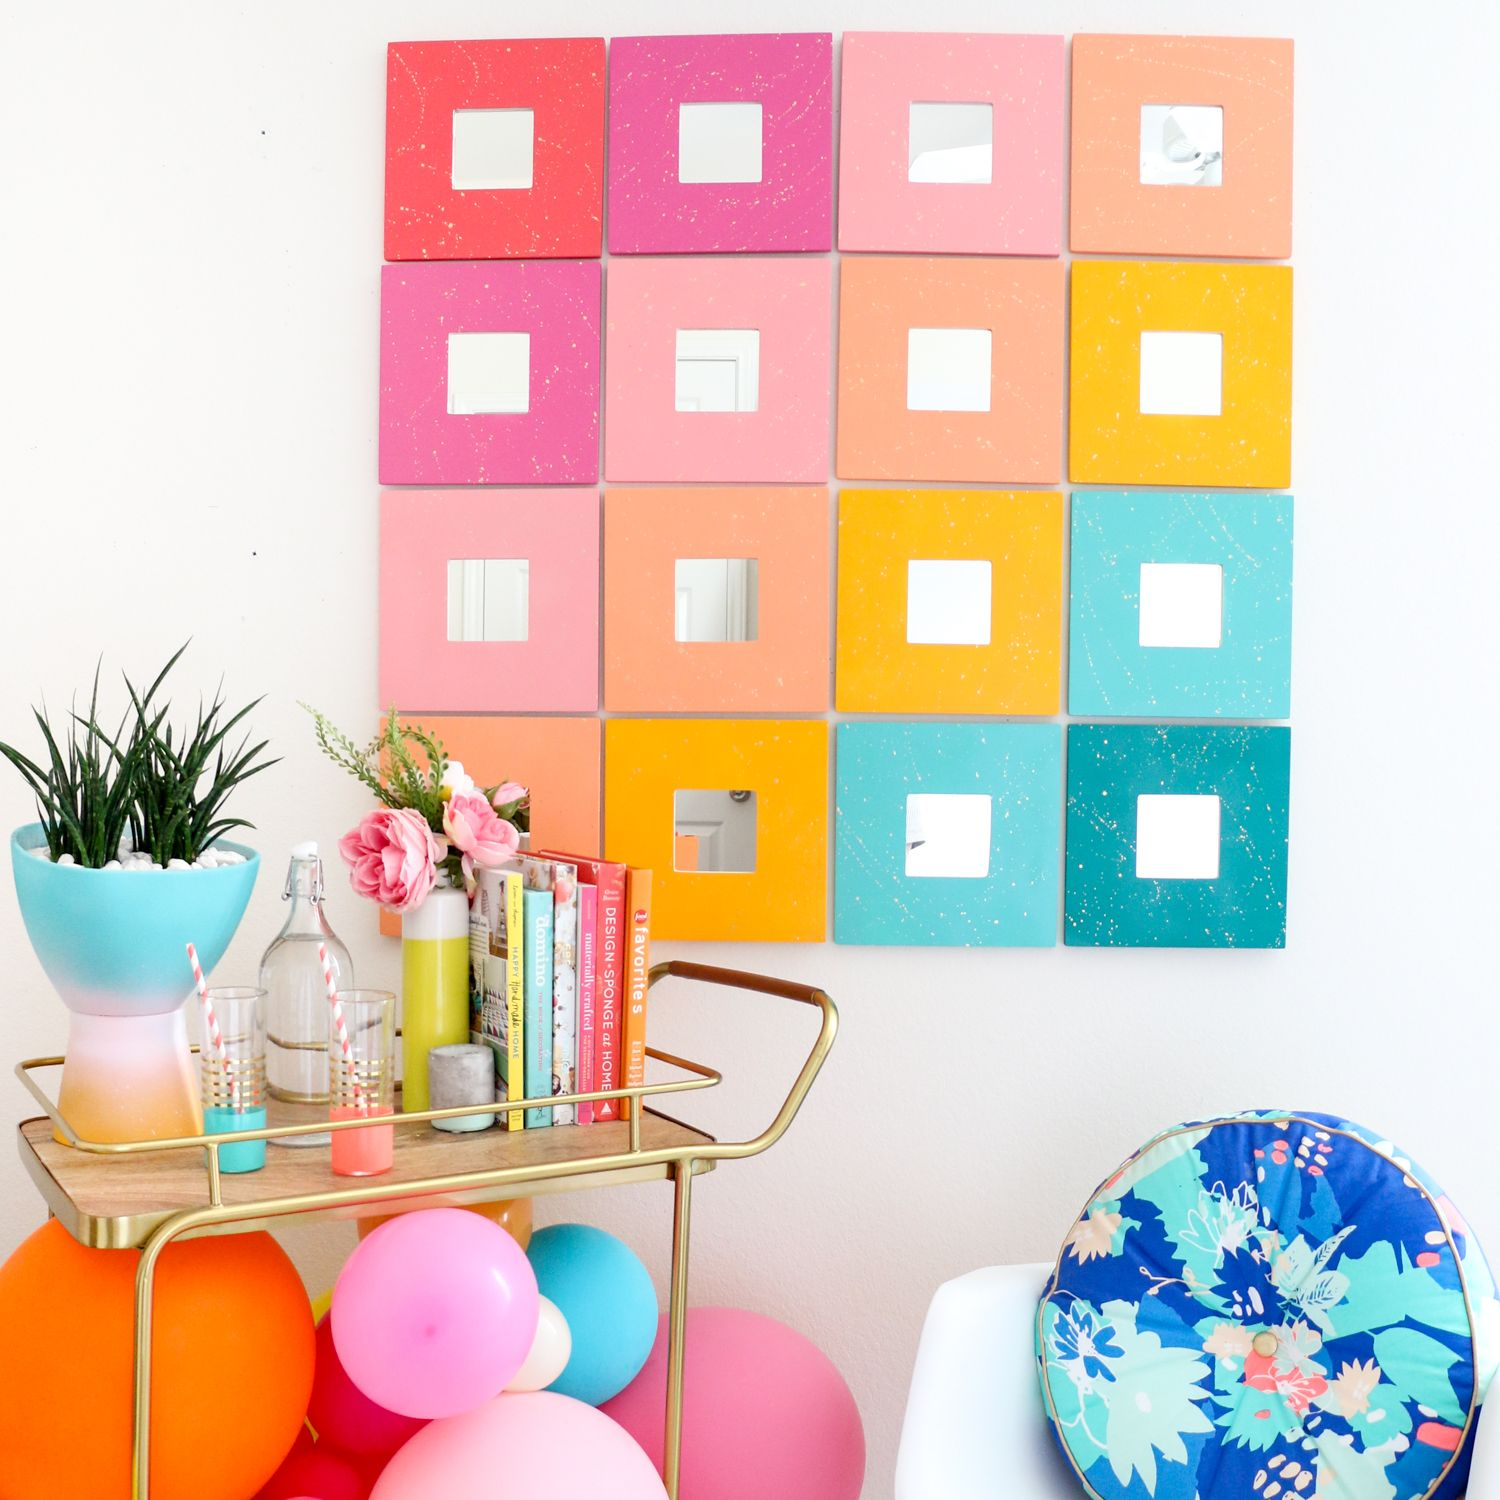 Diy splatter painted mirror wall art create with a kailo chic life